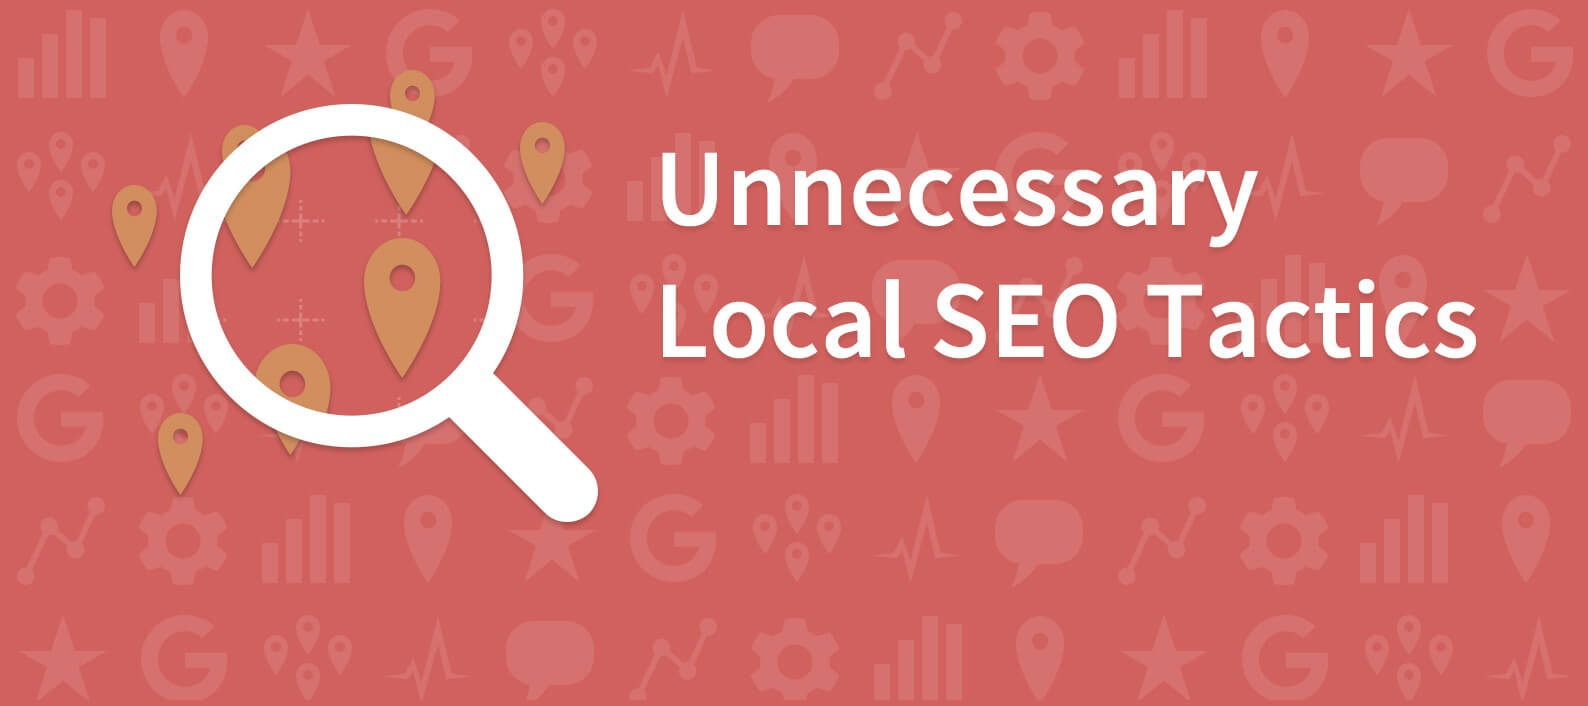 5 Local SEO tactics you need to stop doing today